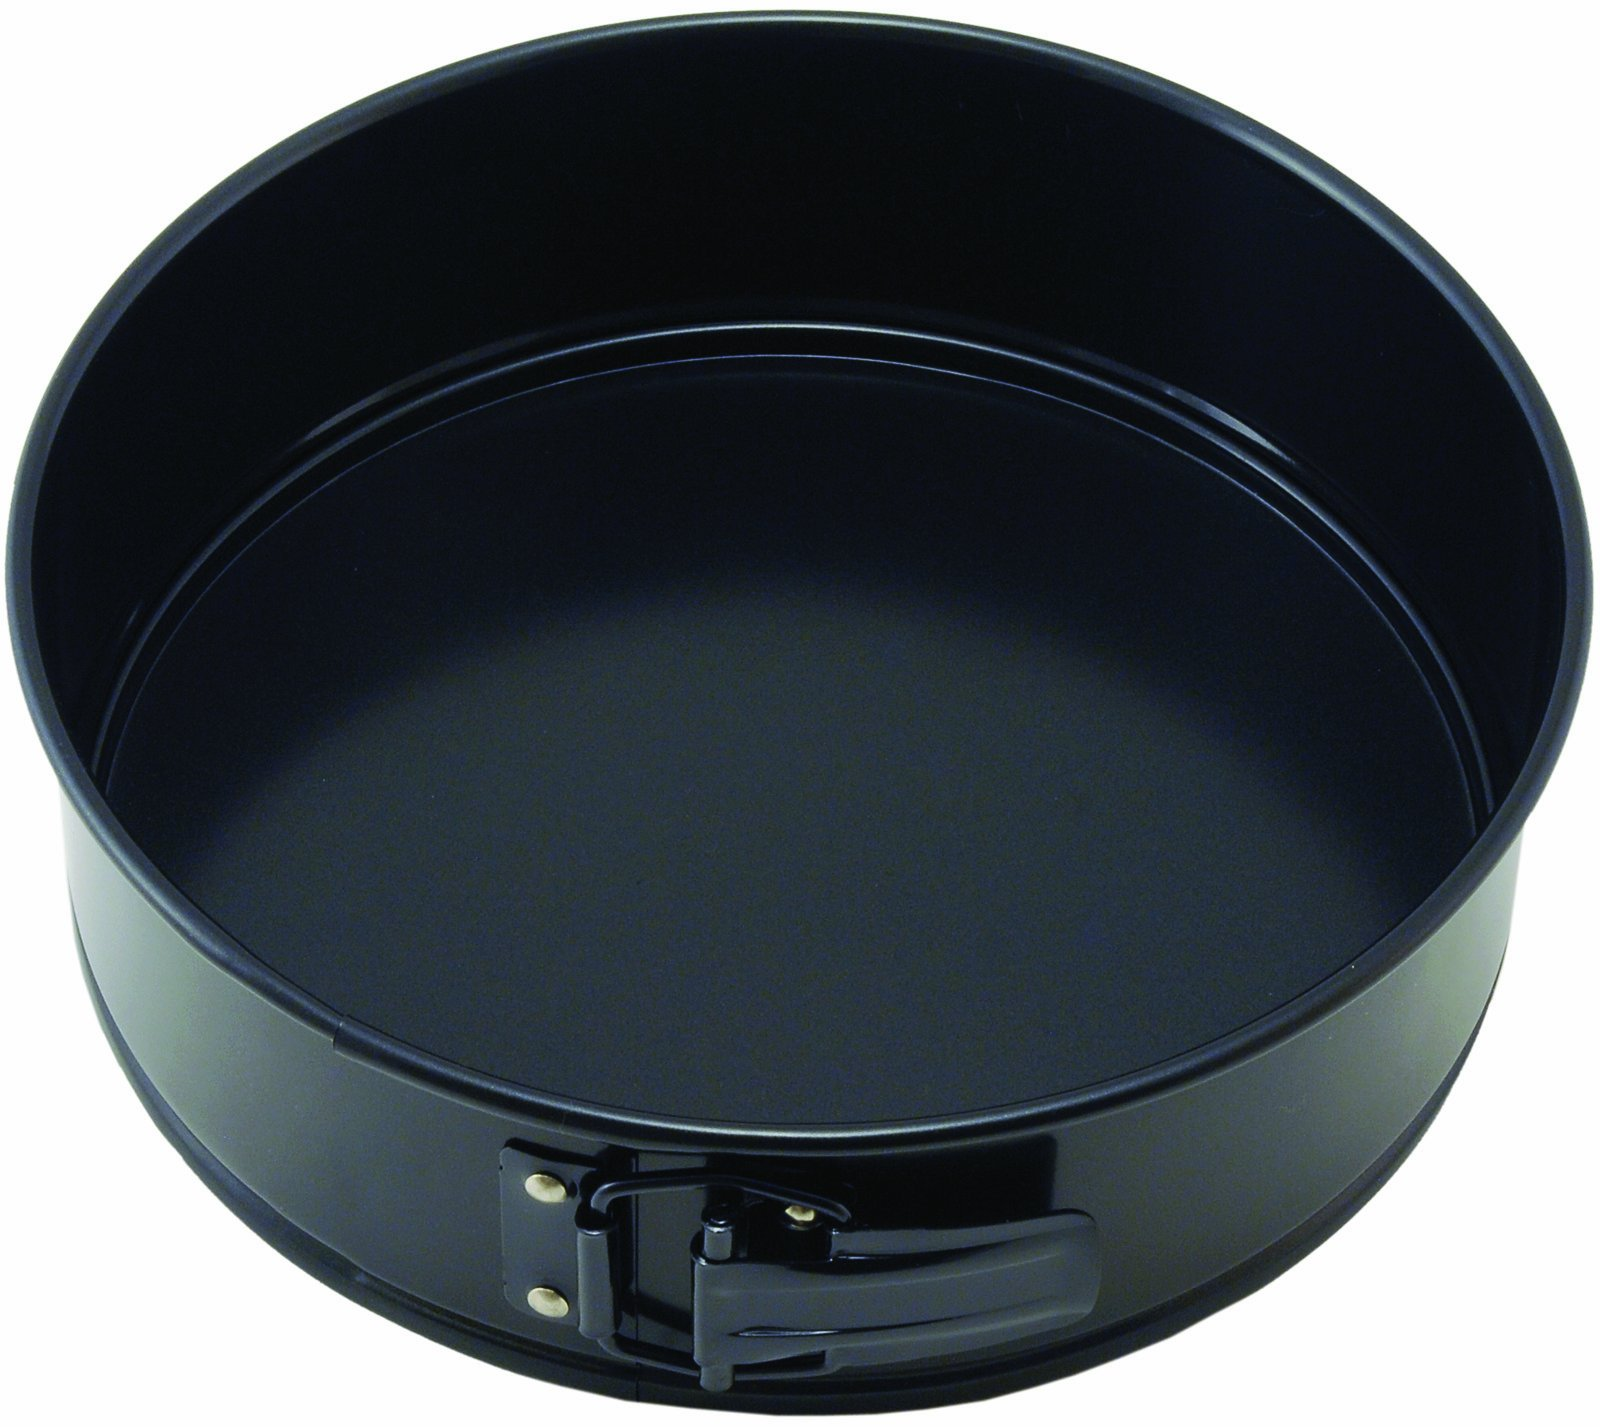 Tala 10A25108 Spring Form Cake Tin, Black